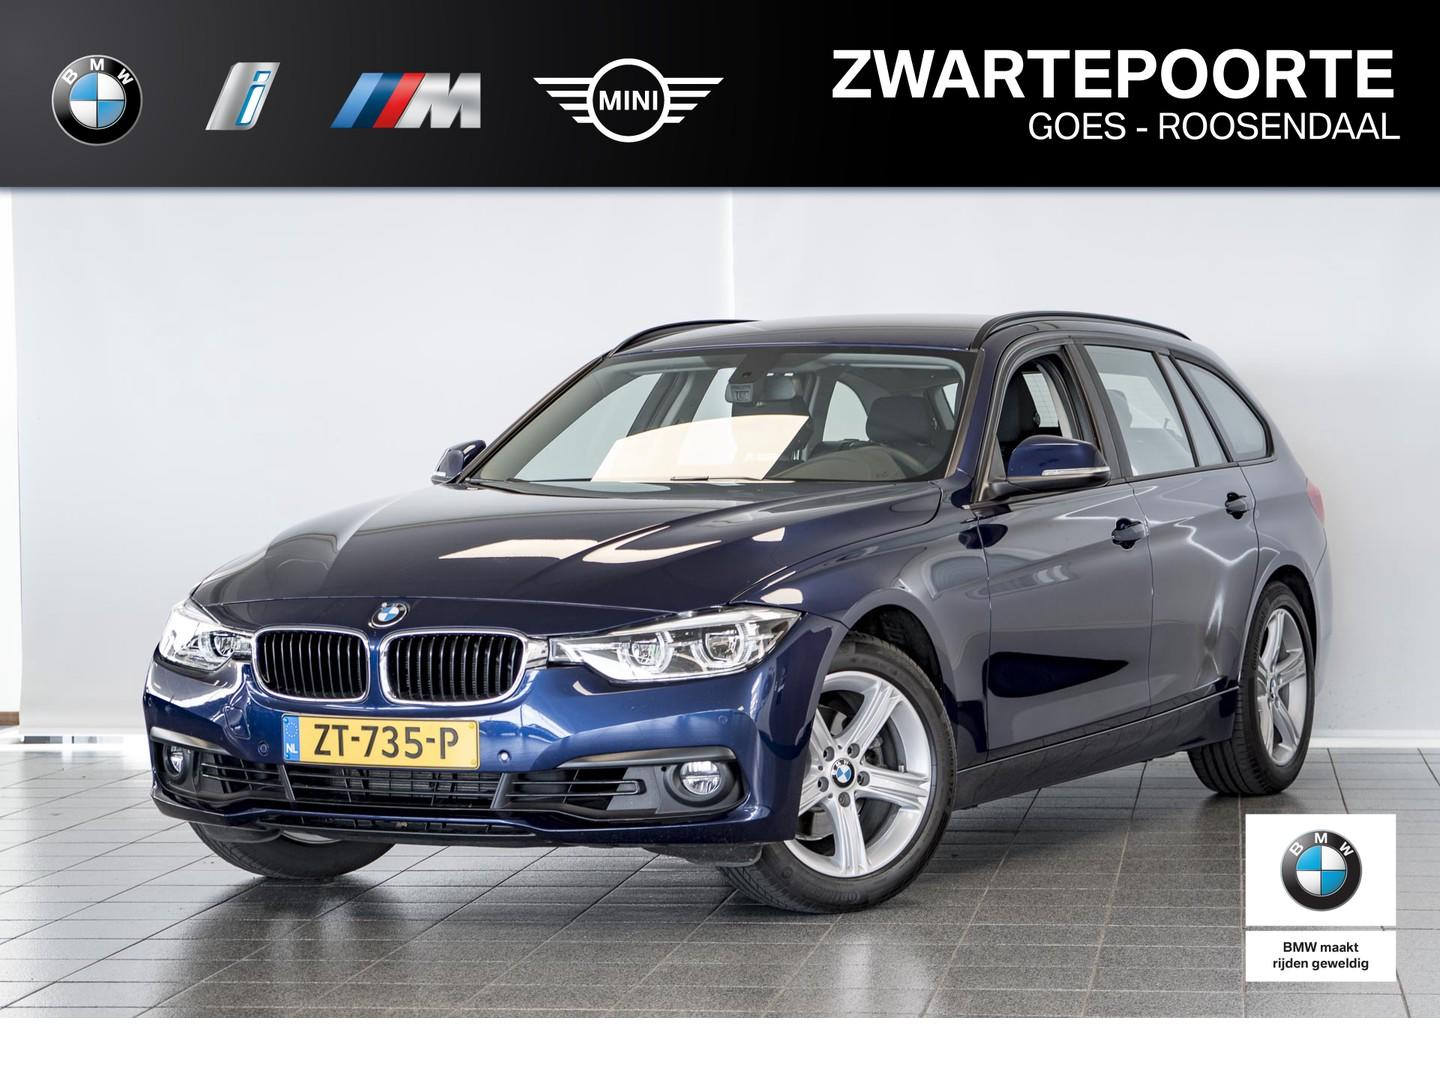 Bmw 3 serie Touring 320i executive - stoelverwarming - hifi